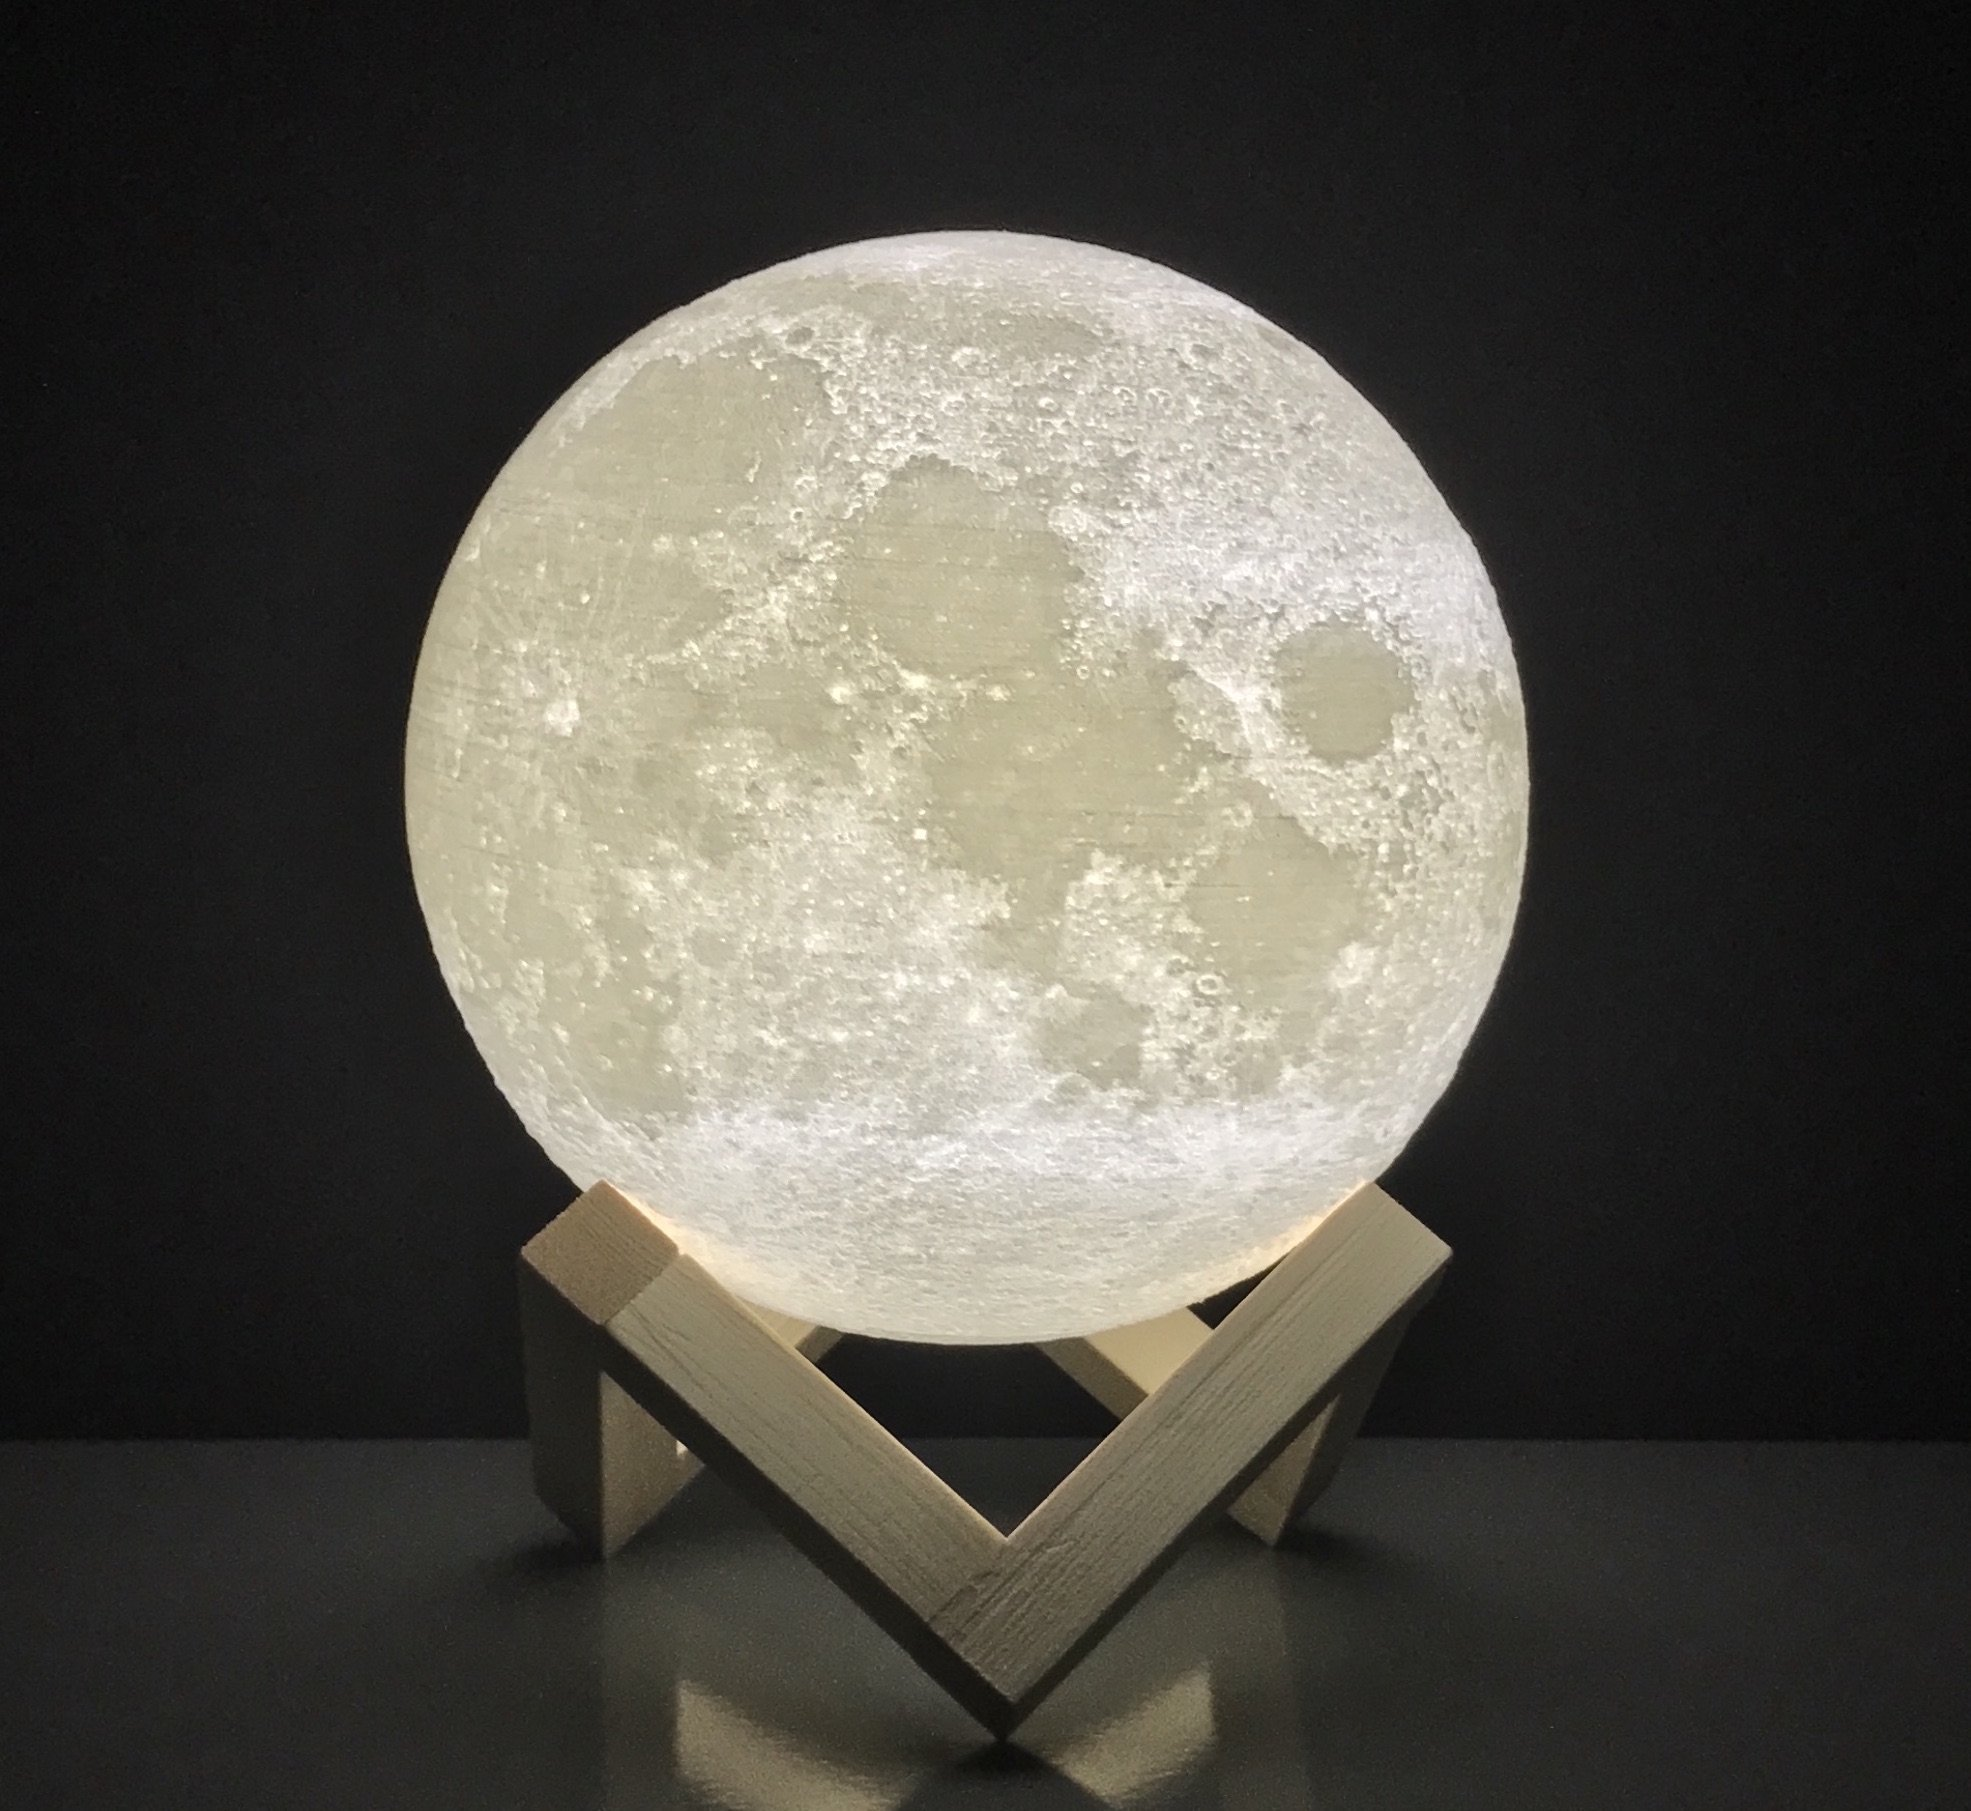 Moon Lamp Round Night Light 3D printed | FREE EBOOK | Dimmable Brightness, Touch Sensor, USB Charger, Warm & Cool White Lighting, Amazing Lunar Details | For Bedroom, Desk, Home & More (3.9 inch)